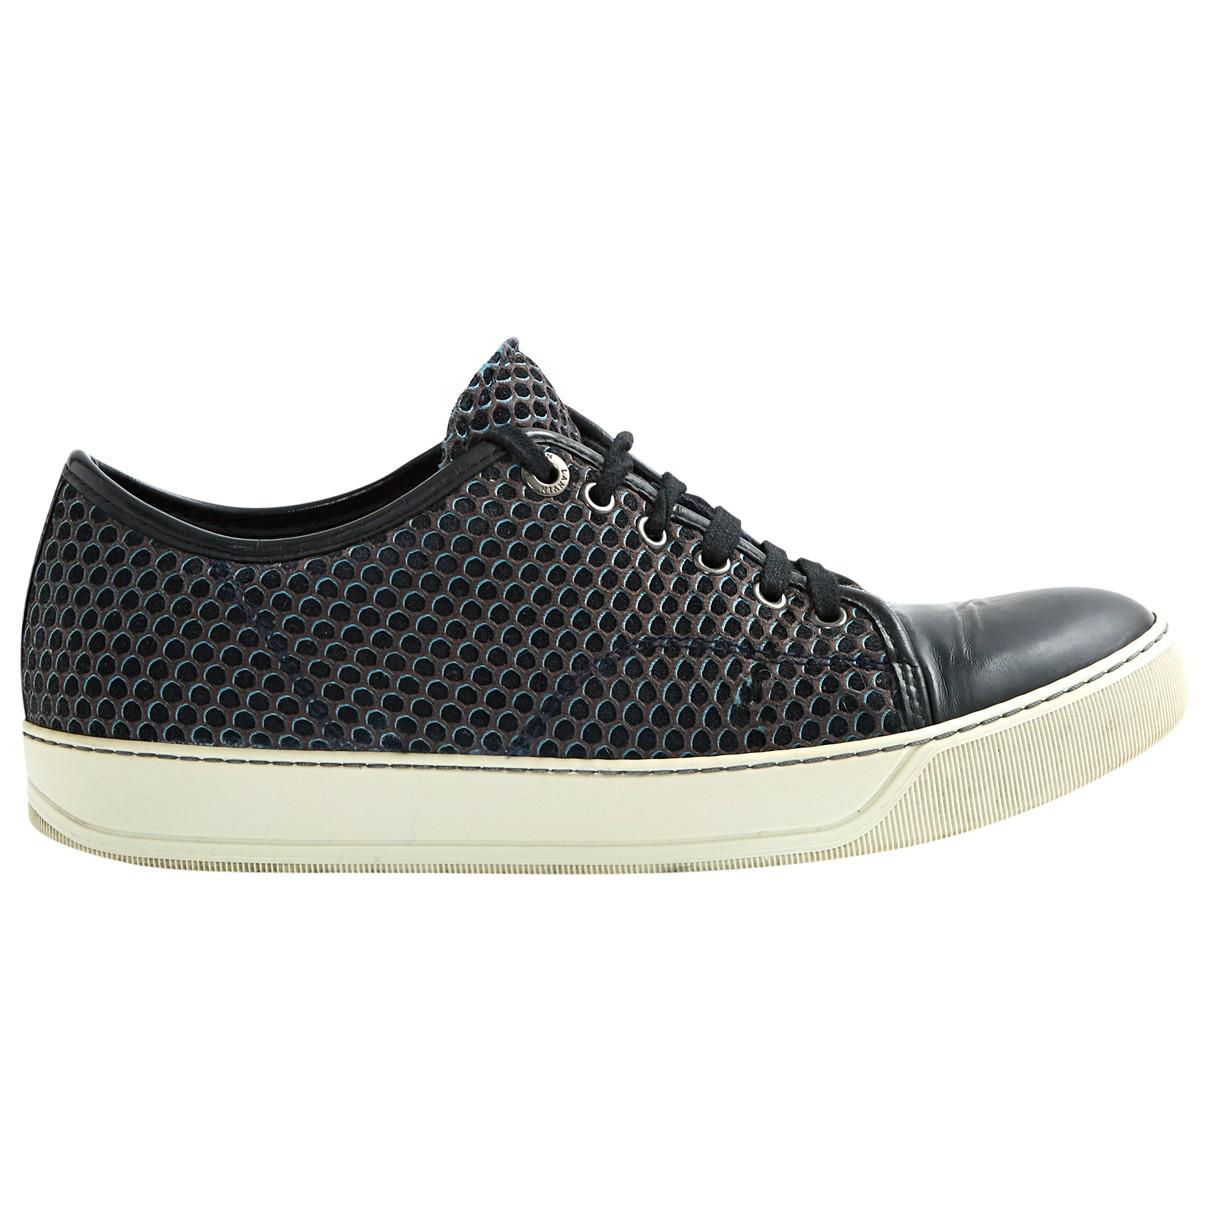 Pre-owned - Leather low trainers Lanvin rWVPVZO